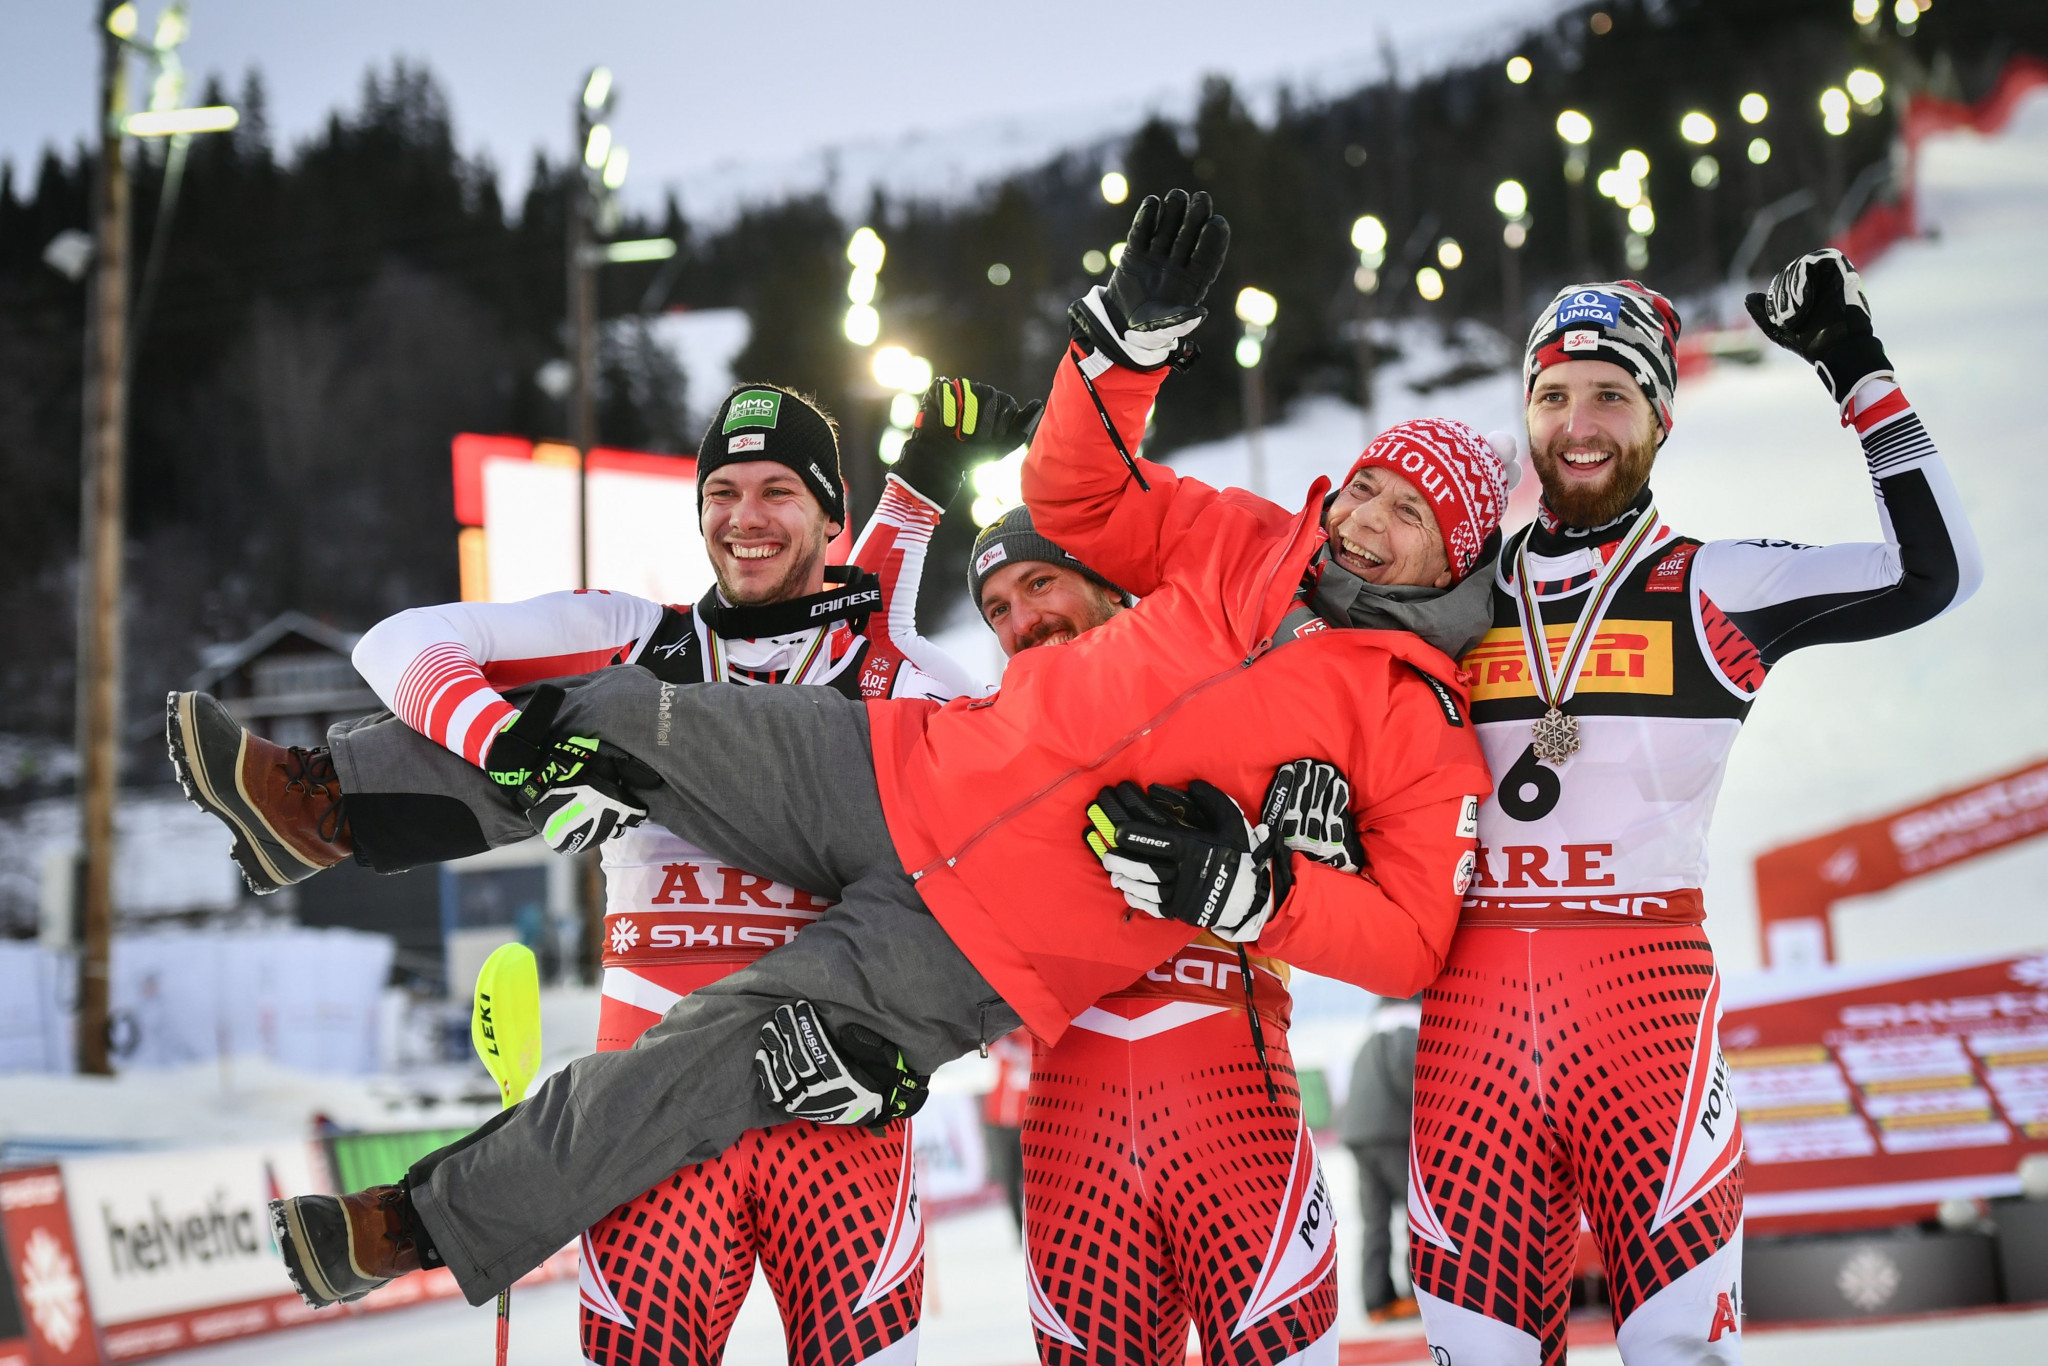 The Austrian team were left celebrating a successful final day following their podium sweep ©Getty Images